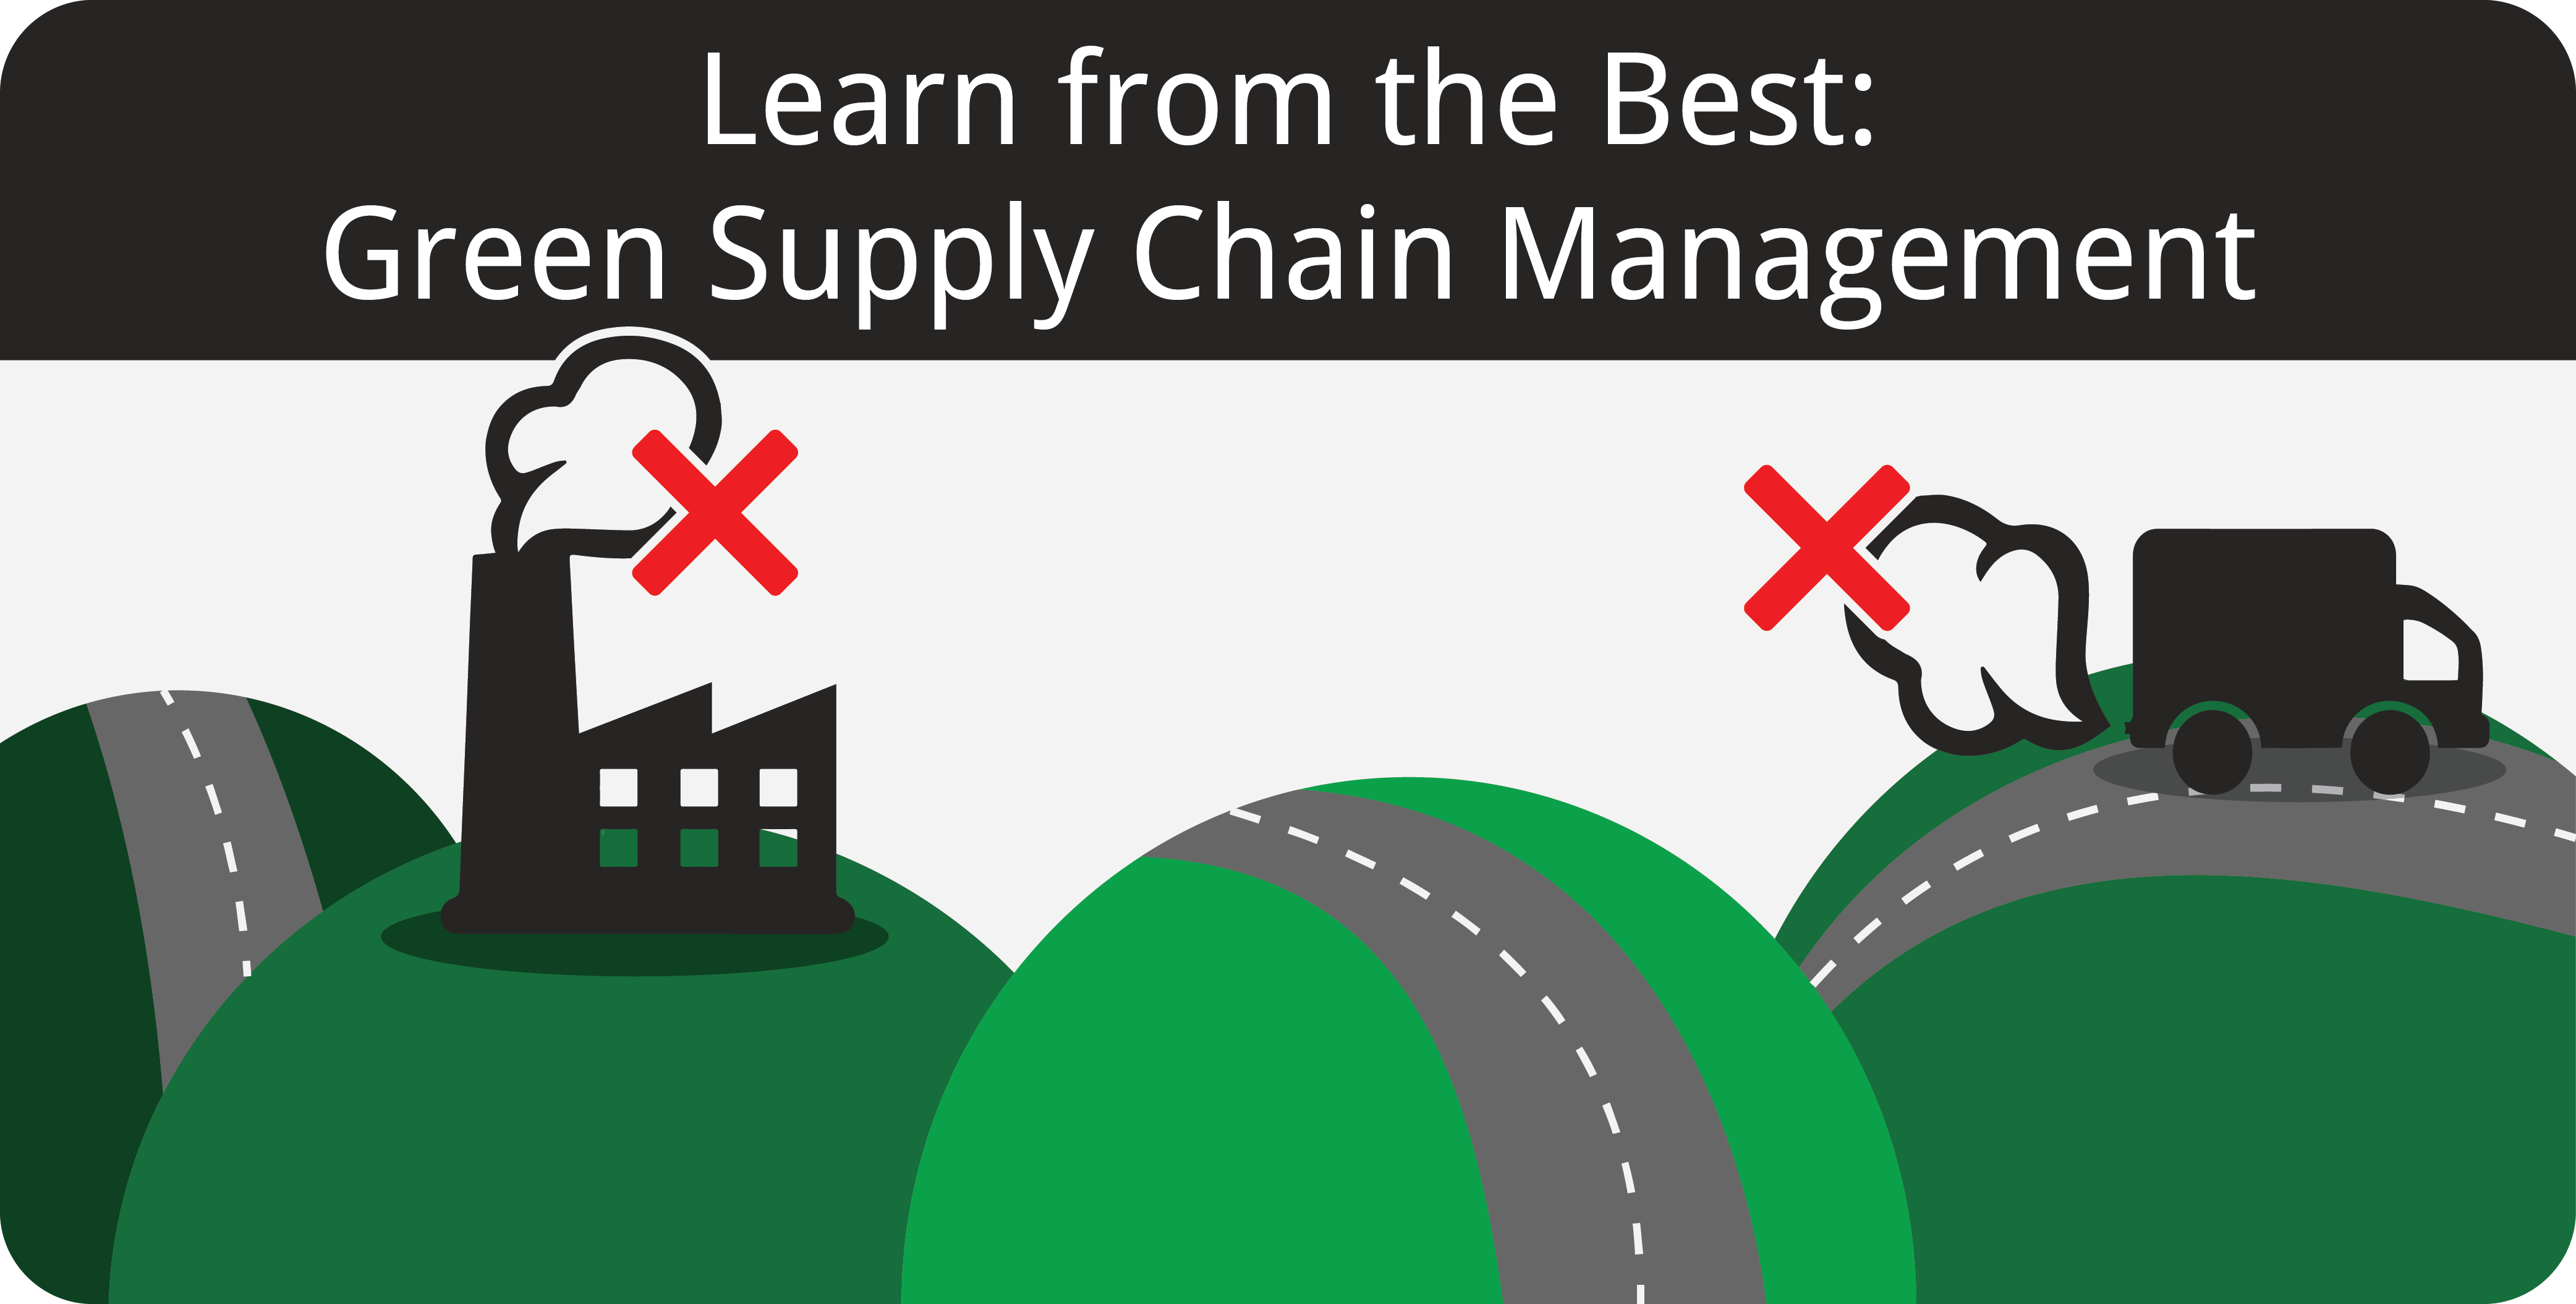 dream beauty case study supply chain management L'oréal: a beautiful supply chain by lora cecere march 6,  supply chain results beauty category i am currently collecting case studies in supply chain leadership for my next book, supply chain leadership matters, to publish in 2016.